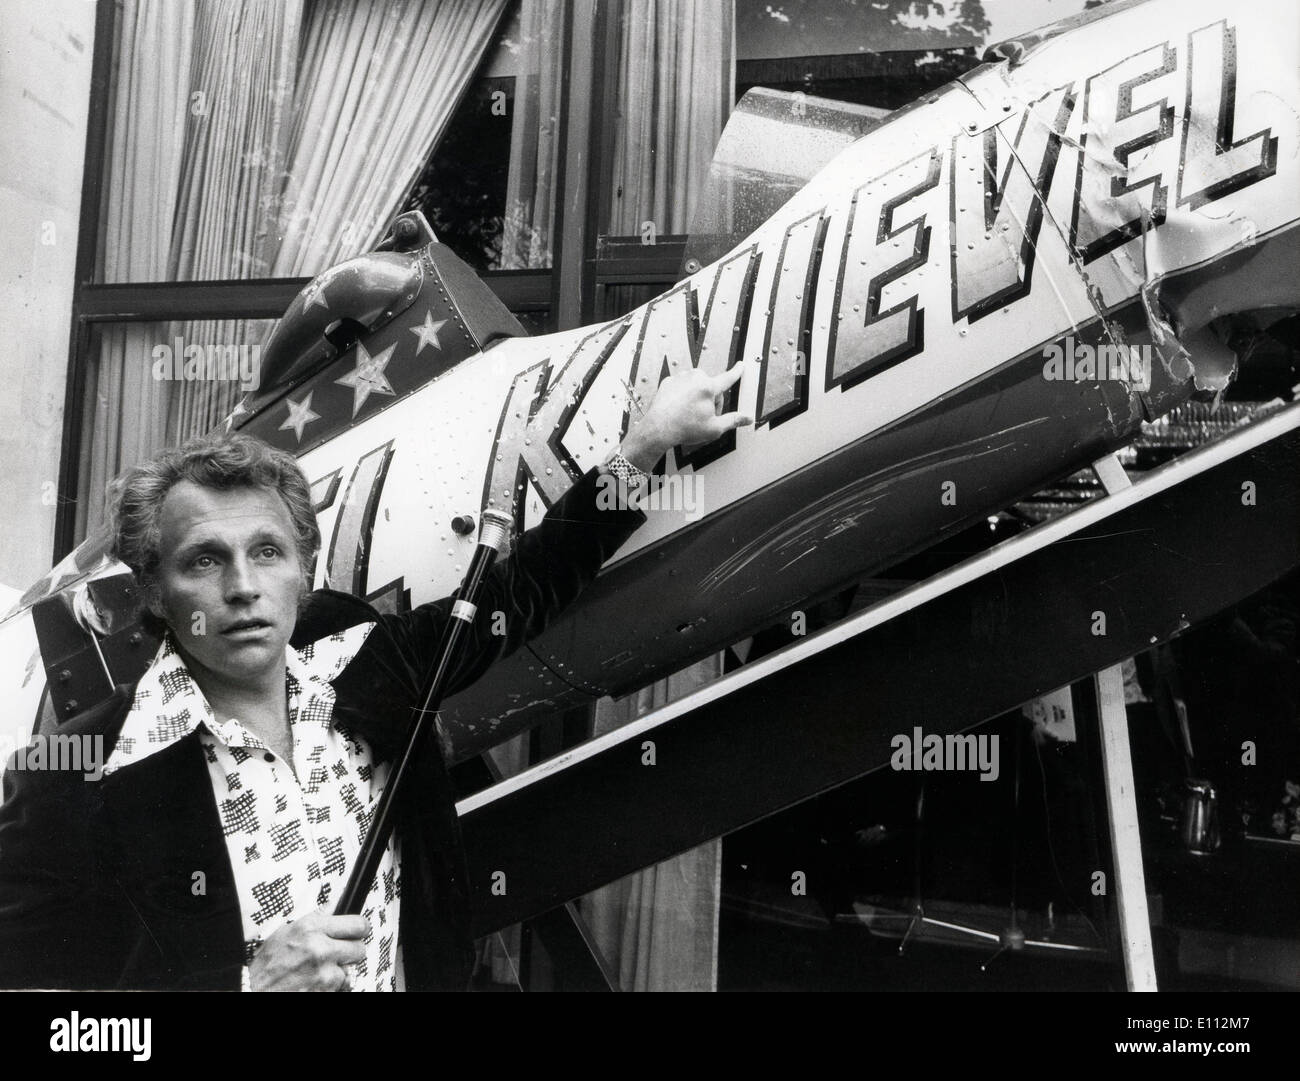 Daredevil Evel Knievel with sky-cycle - Stock Image